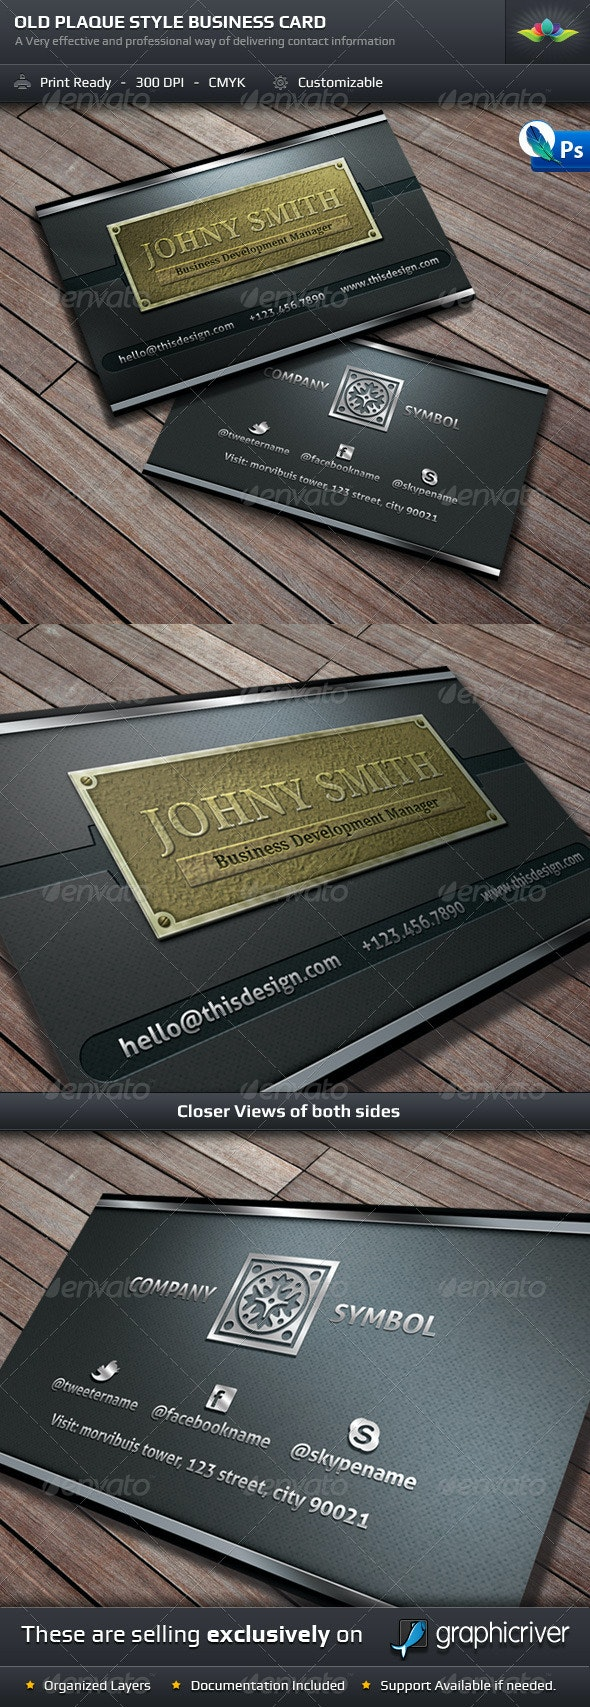 Old Style Plaque Business Card Template - Real Objects Business Cards